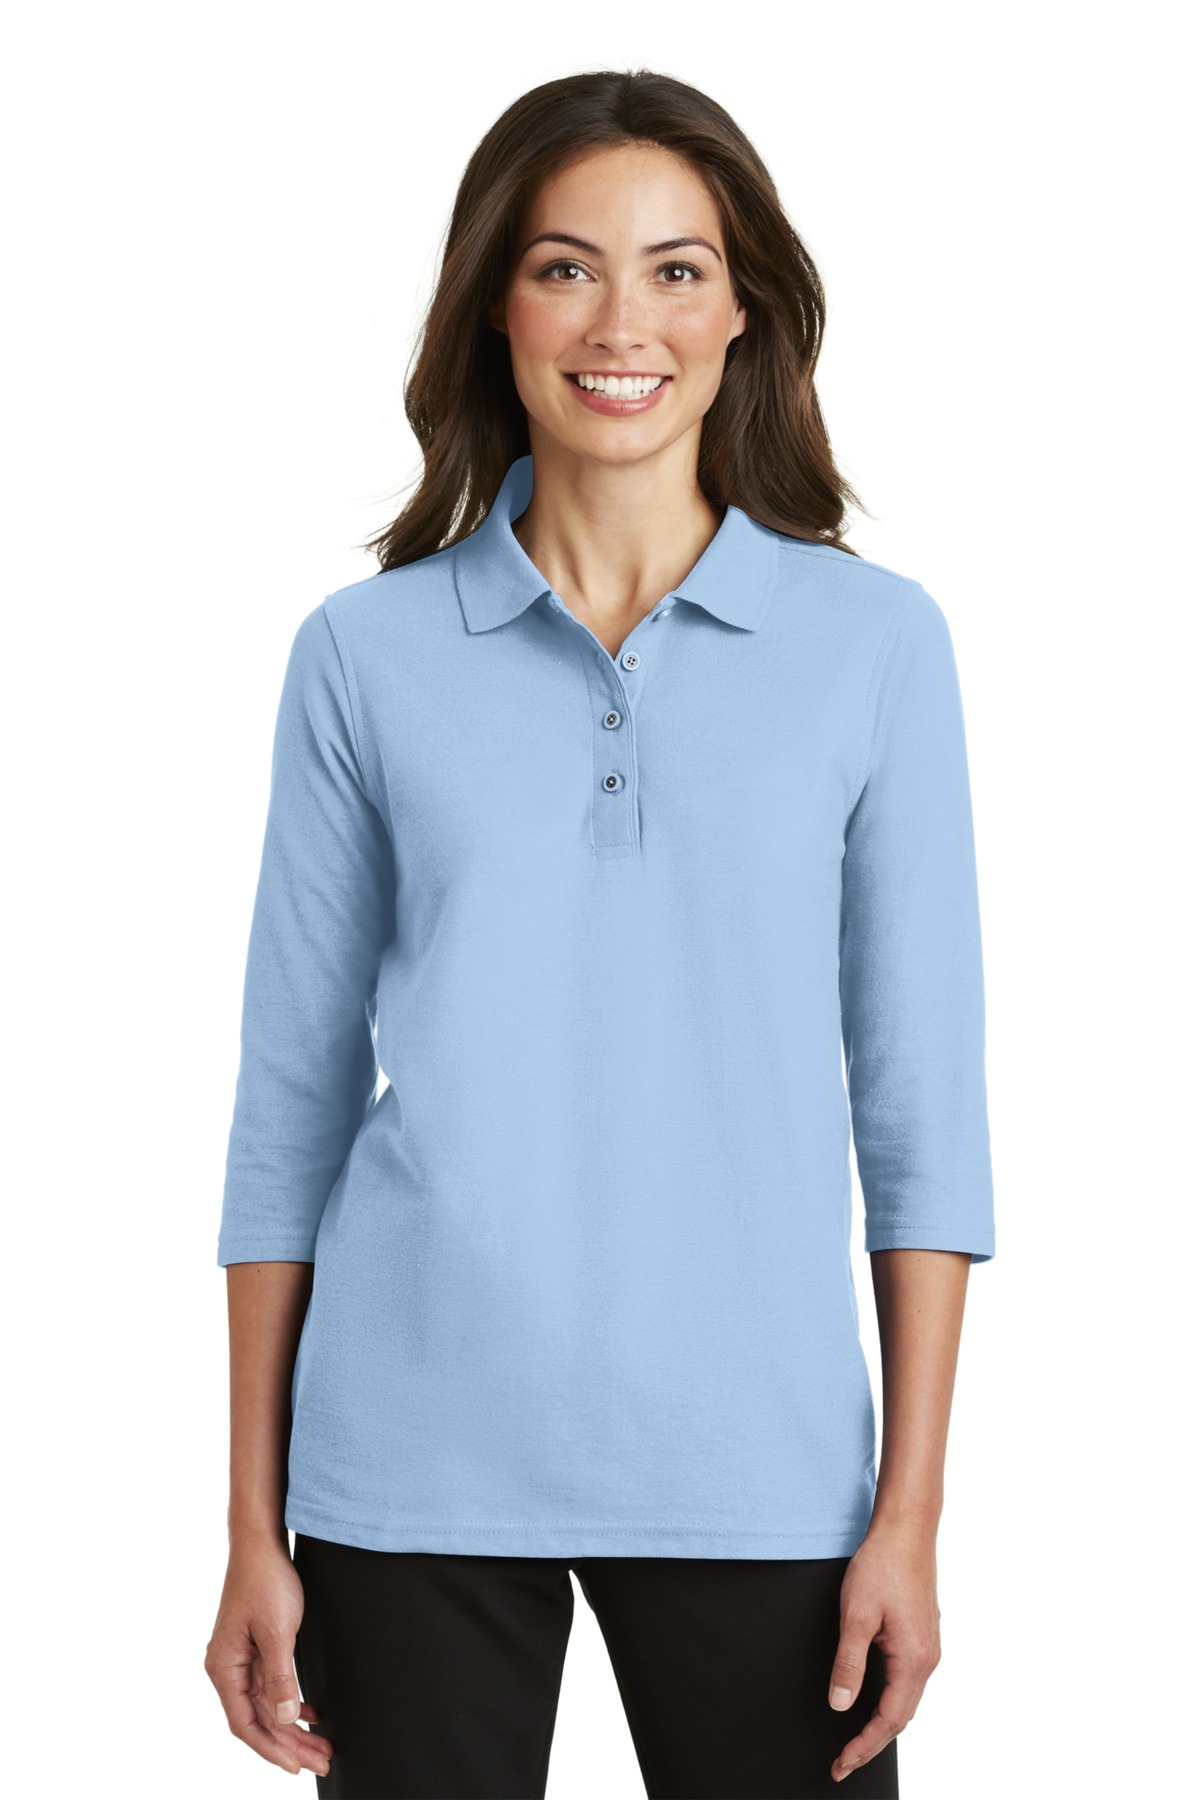 Find great deals on eBay for women polo shirts. Shop with confidence.